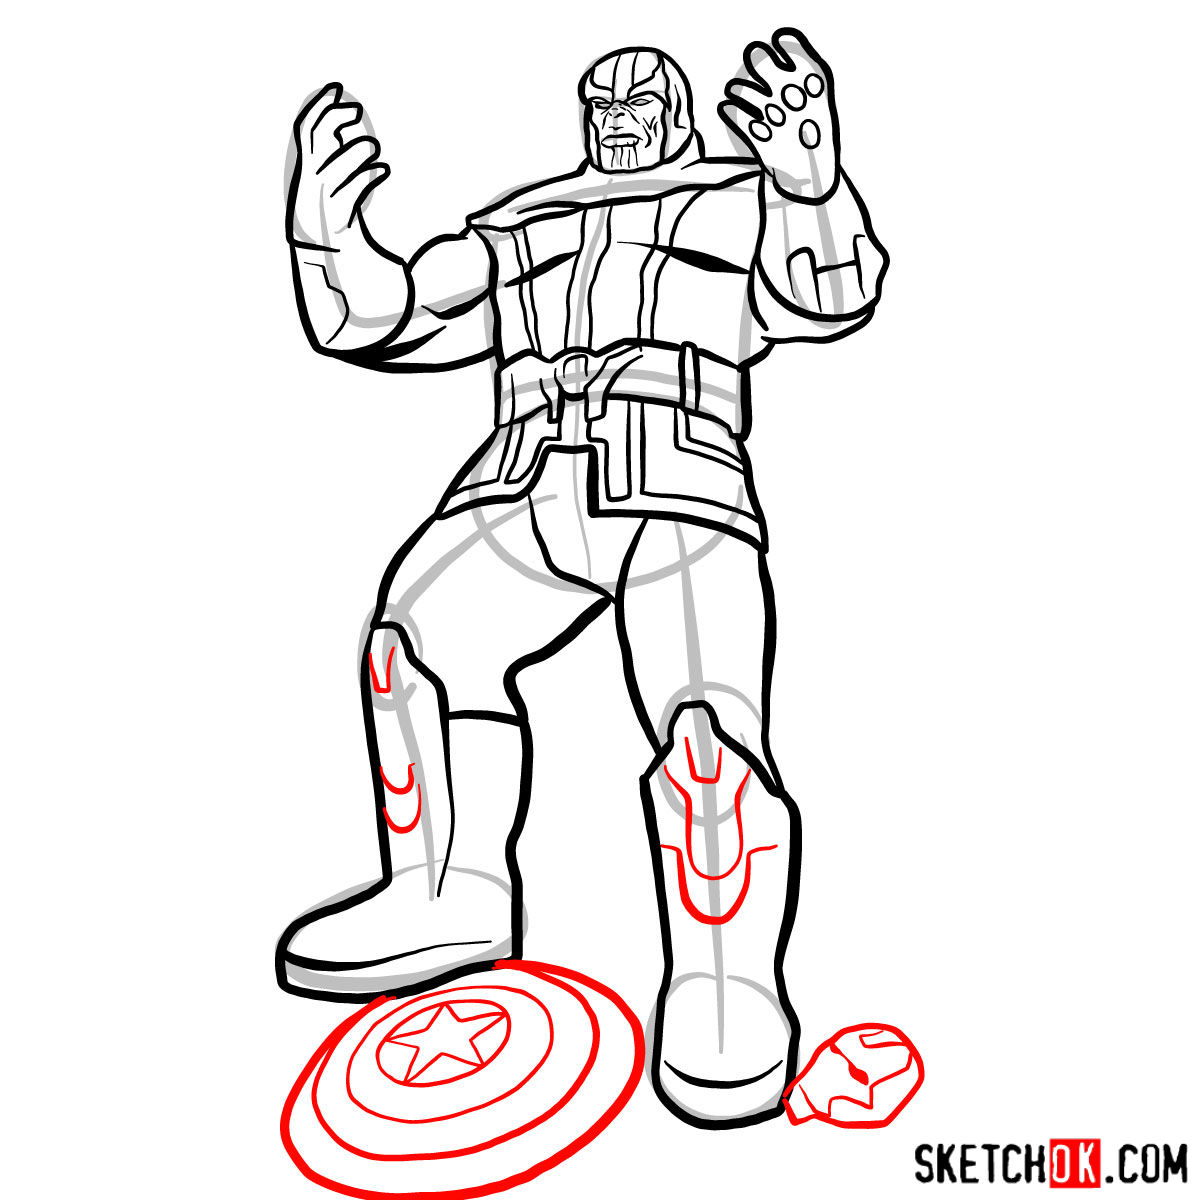 How to draw Thanos with 5 Infinity Stones - step 15